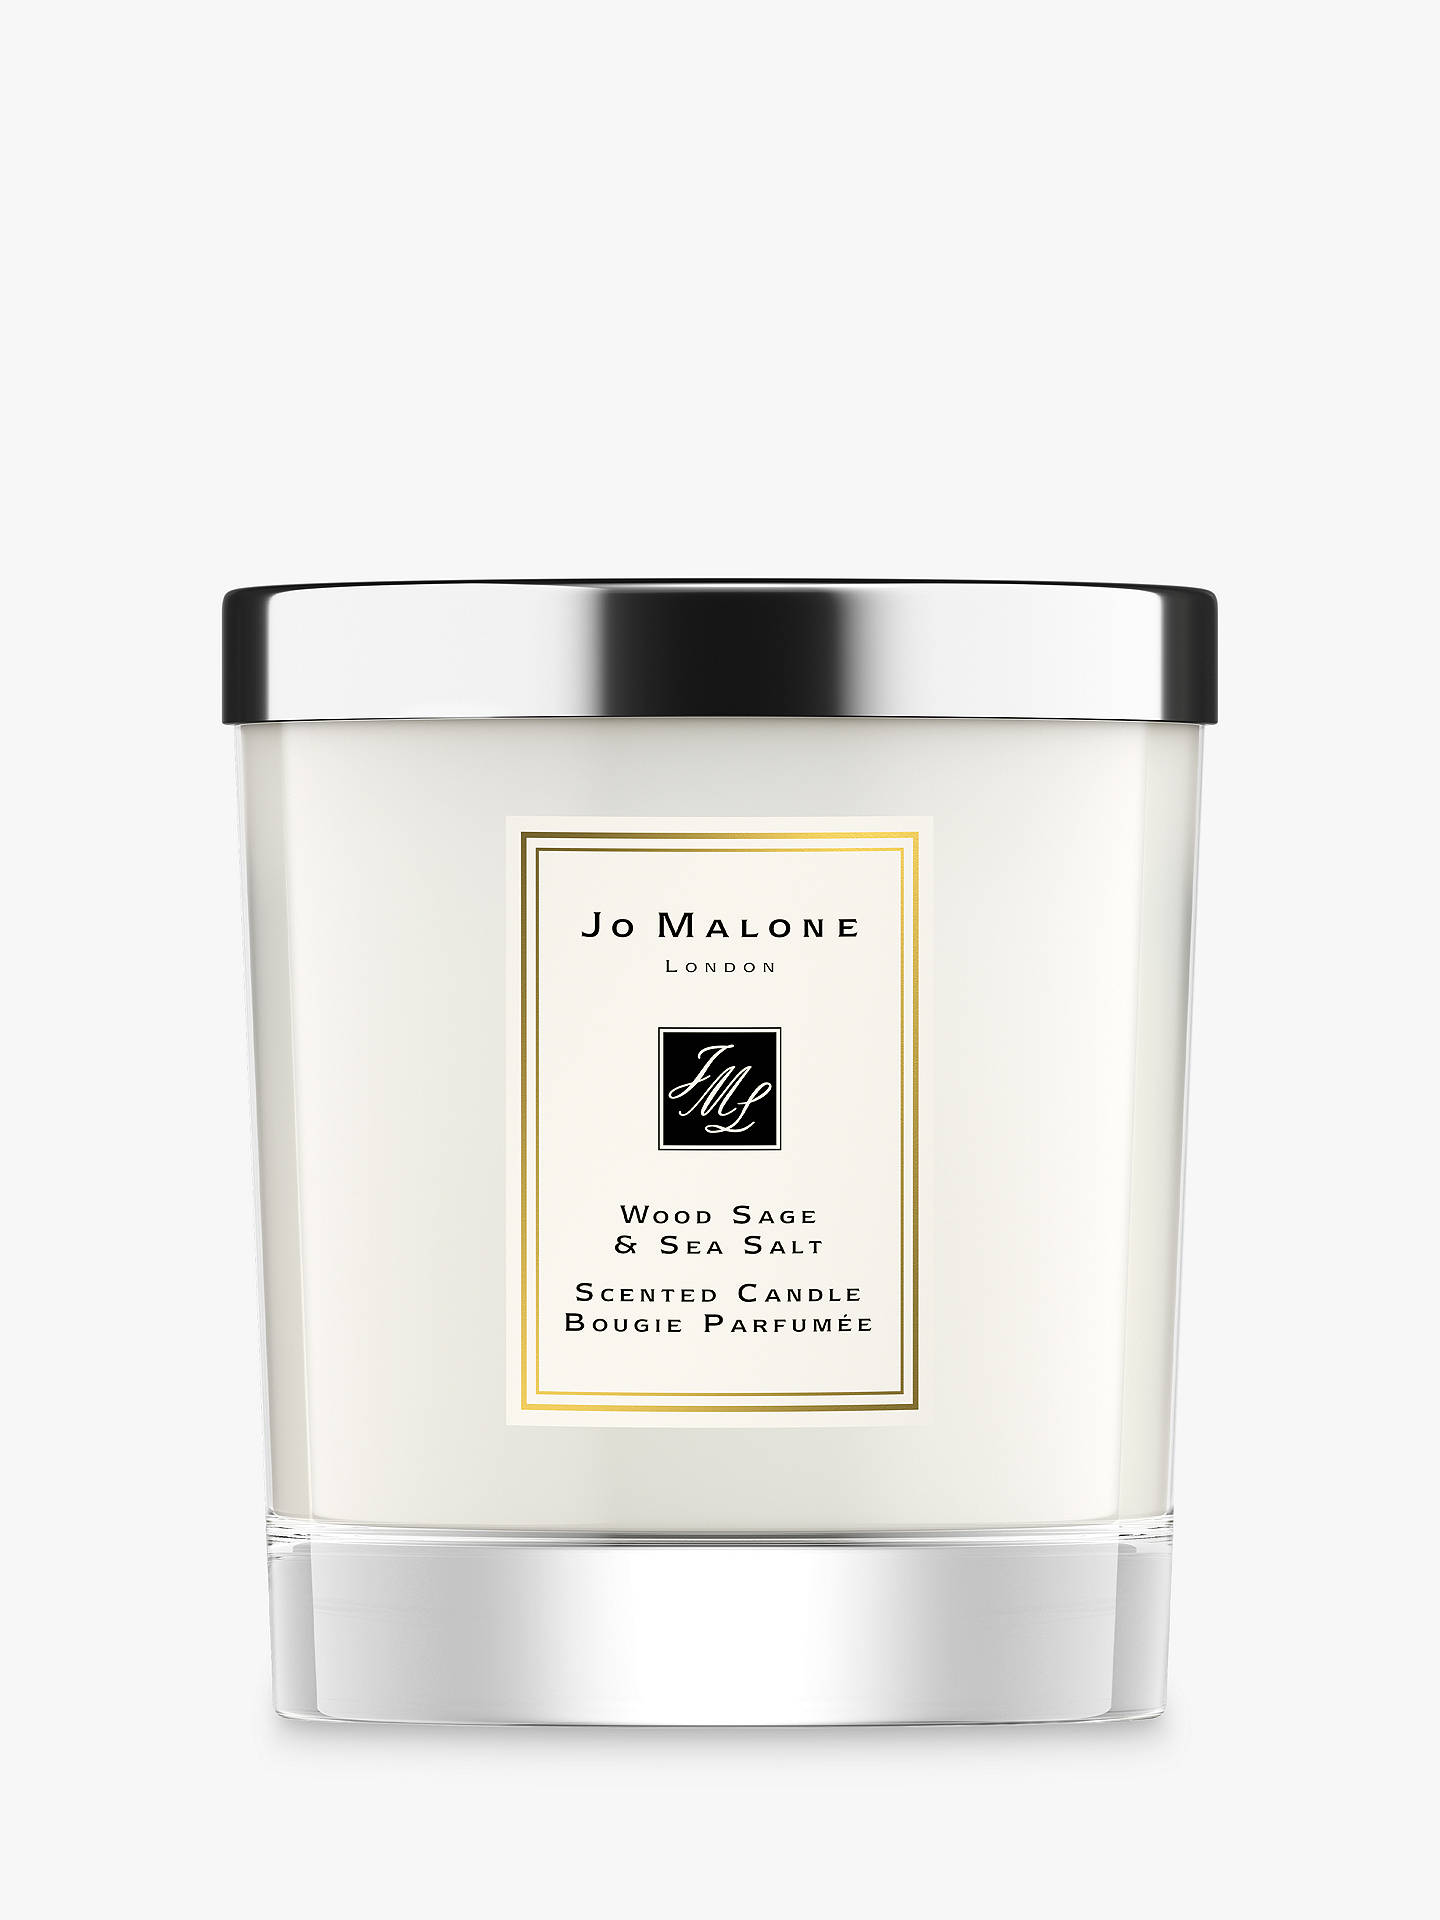 BuyJo Malone London Wood Sage & Sea Salt Candle Online at johnlewis.com